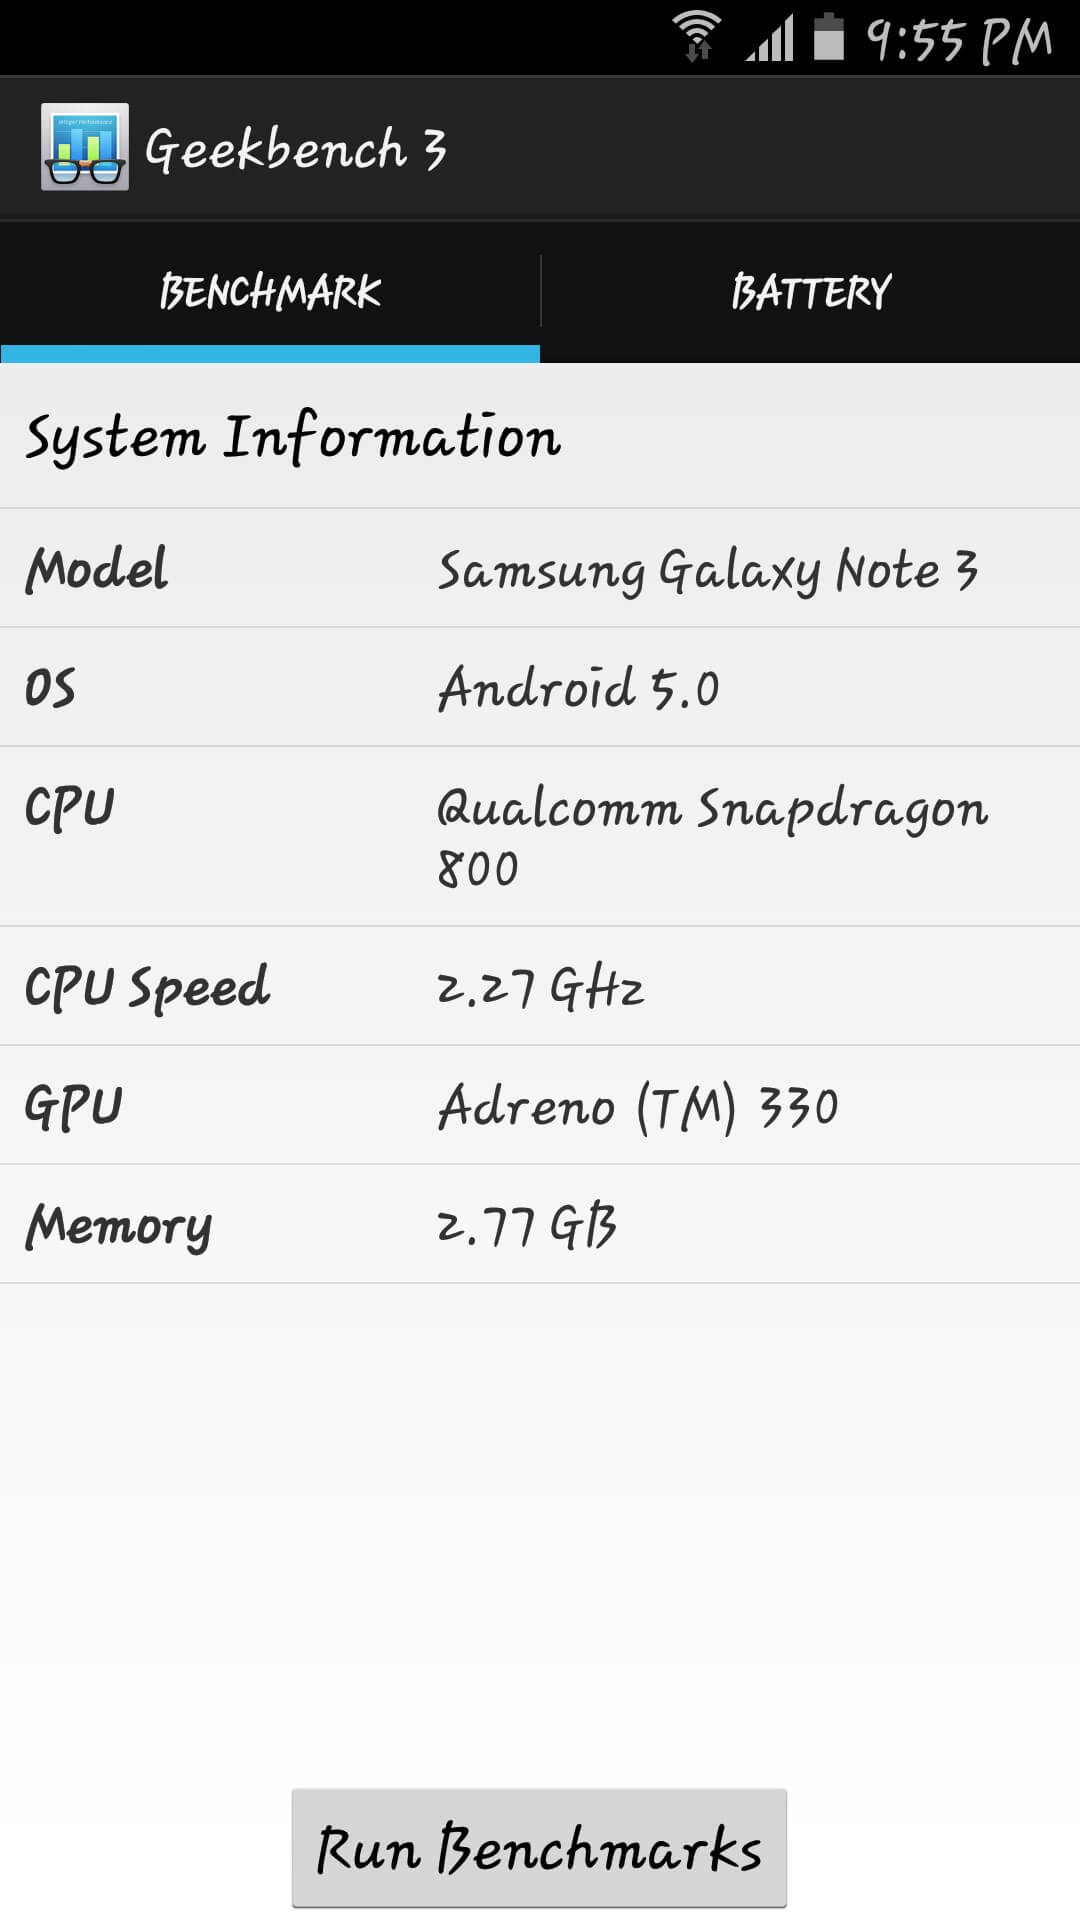 http://www.freehao123.com/wp-content/uploads/2010/01/Returnil-Virtual-System-2010-Home-Free_03.gif_https://joyofandroid.com/wp-content/uploads/2015/04/geekbench-3.